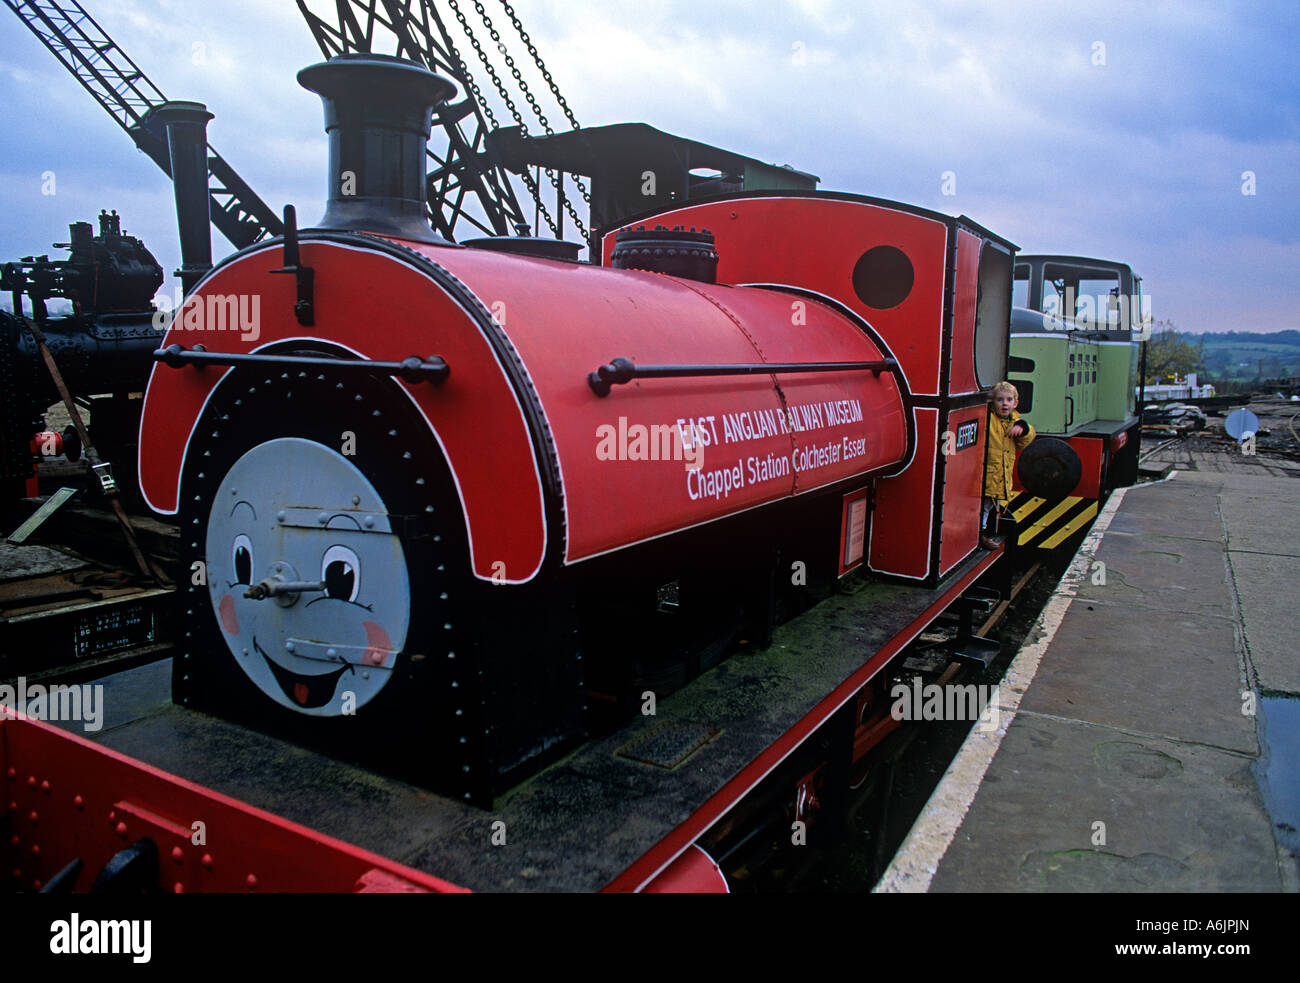 Painted steam engine Jeffrey from Thomas The Tank Engine stories Chappel Station Wakes Colne near Cochlester - Stock Image